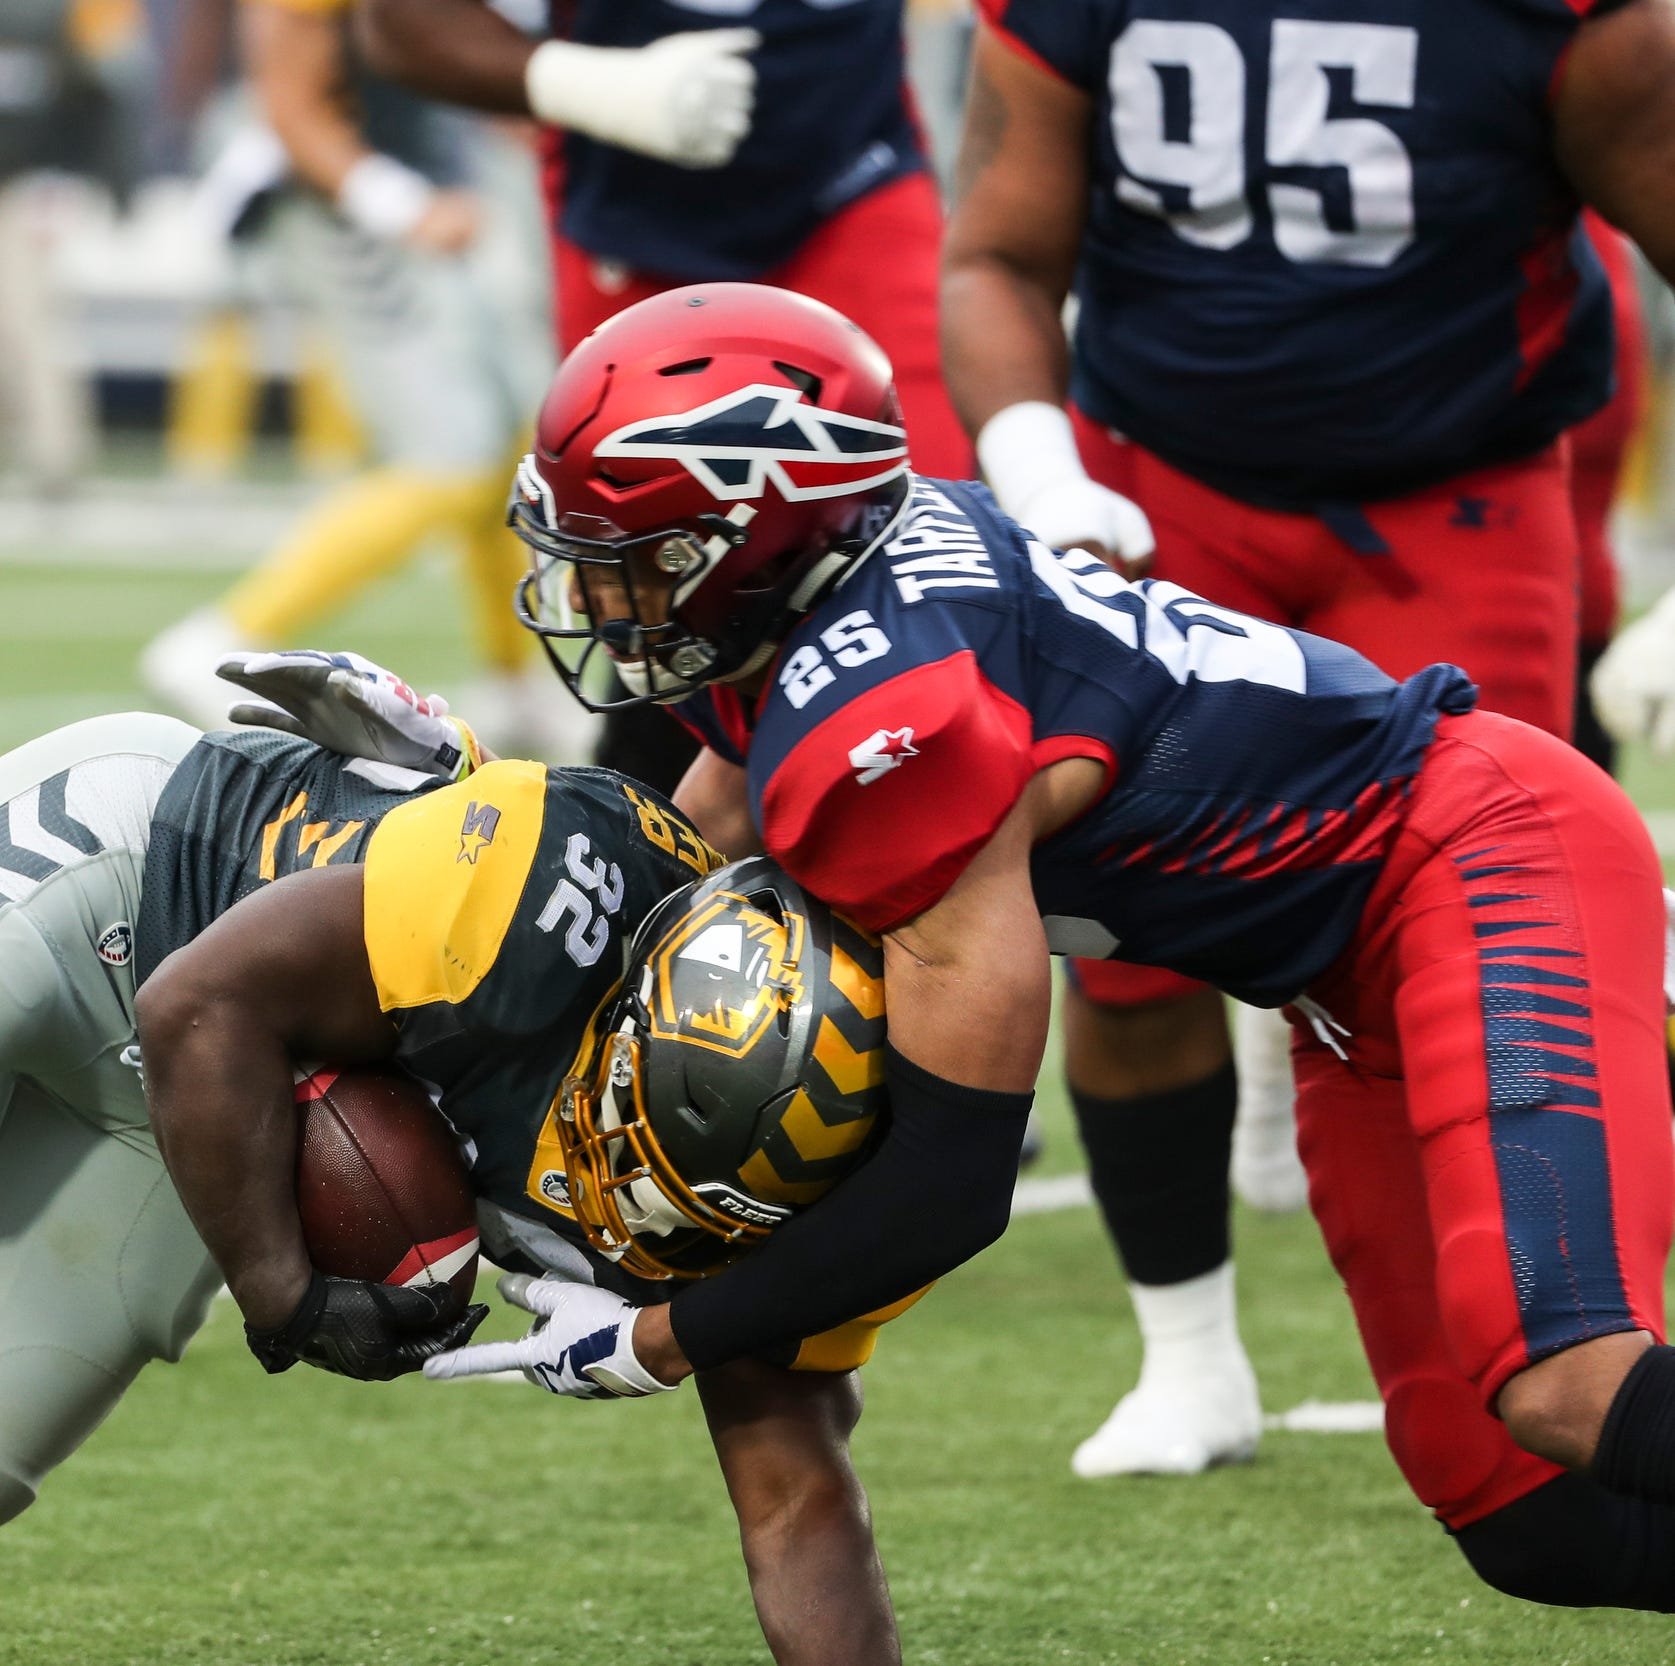 AAF scores, standings and stats through Week 4